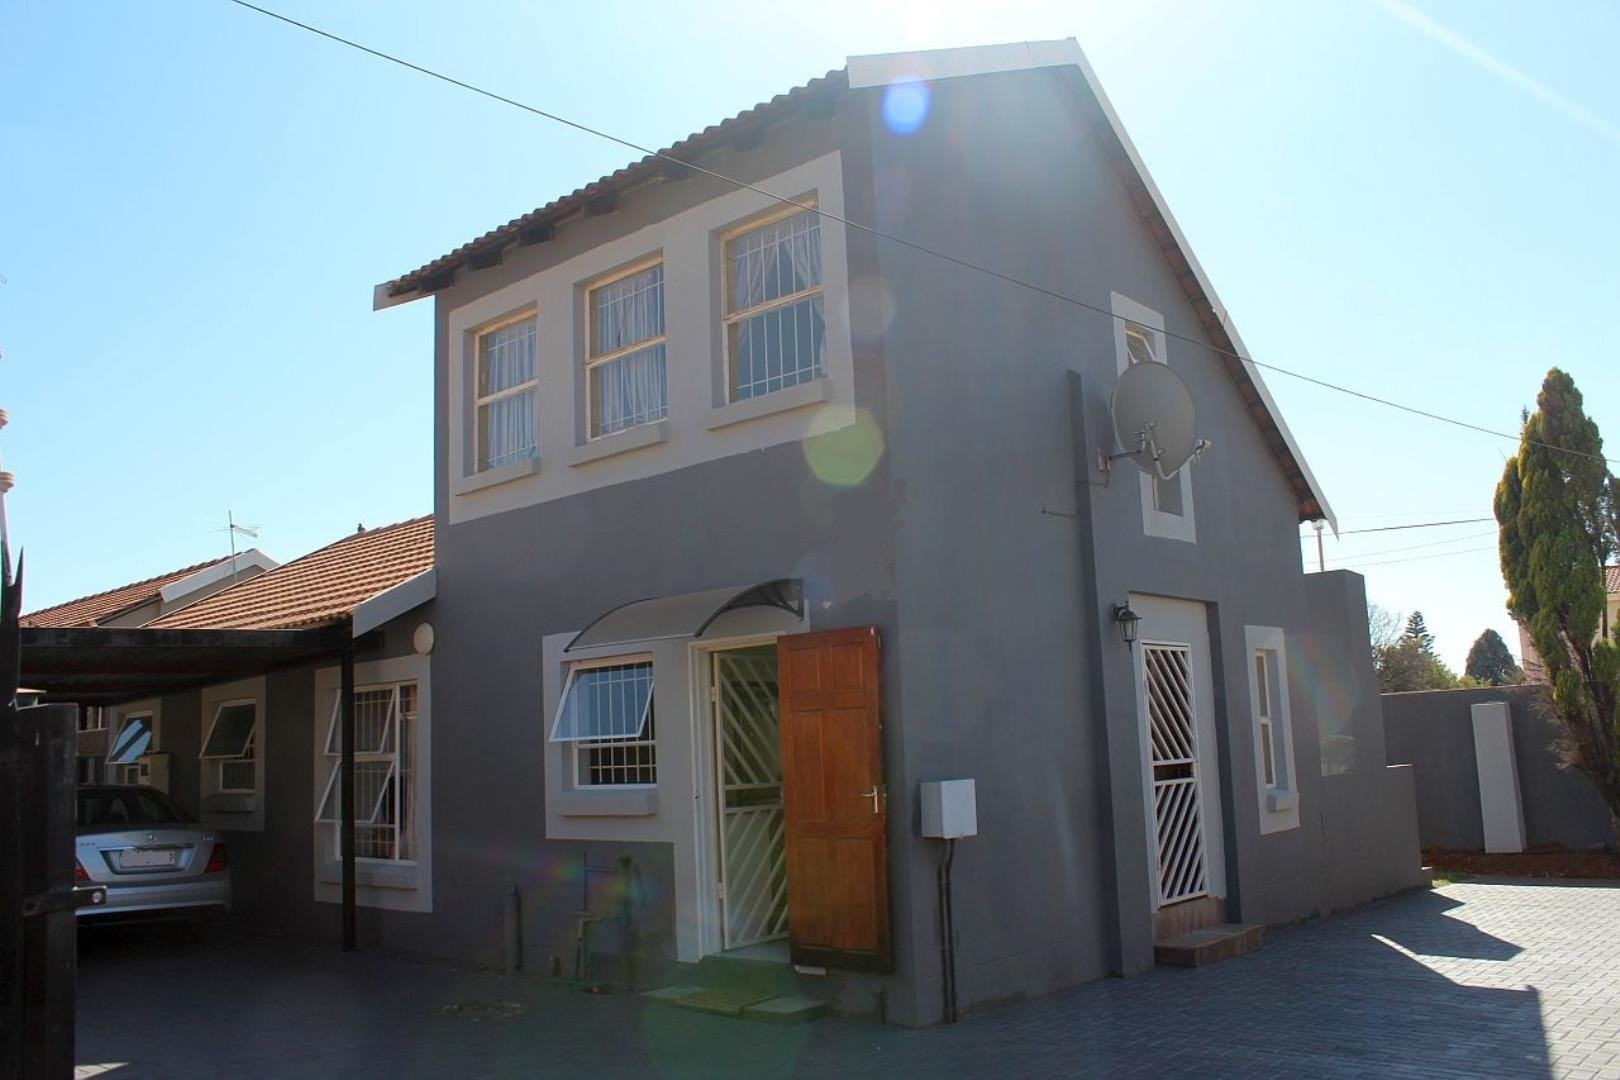 3 Bedroom House for Sale in Noordwyk, Midrand - Gauteng